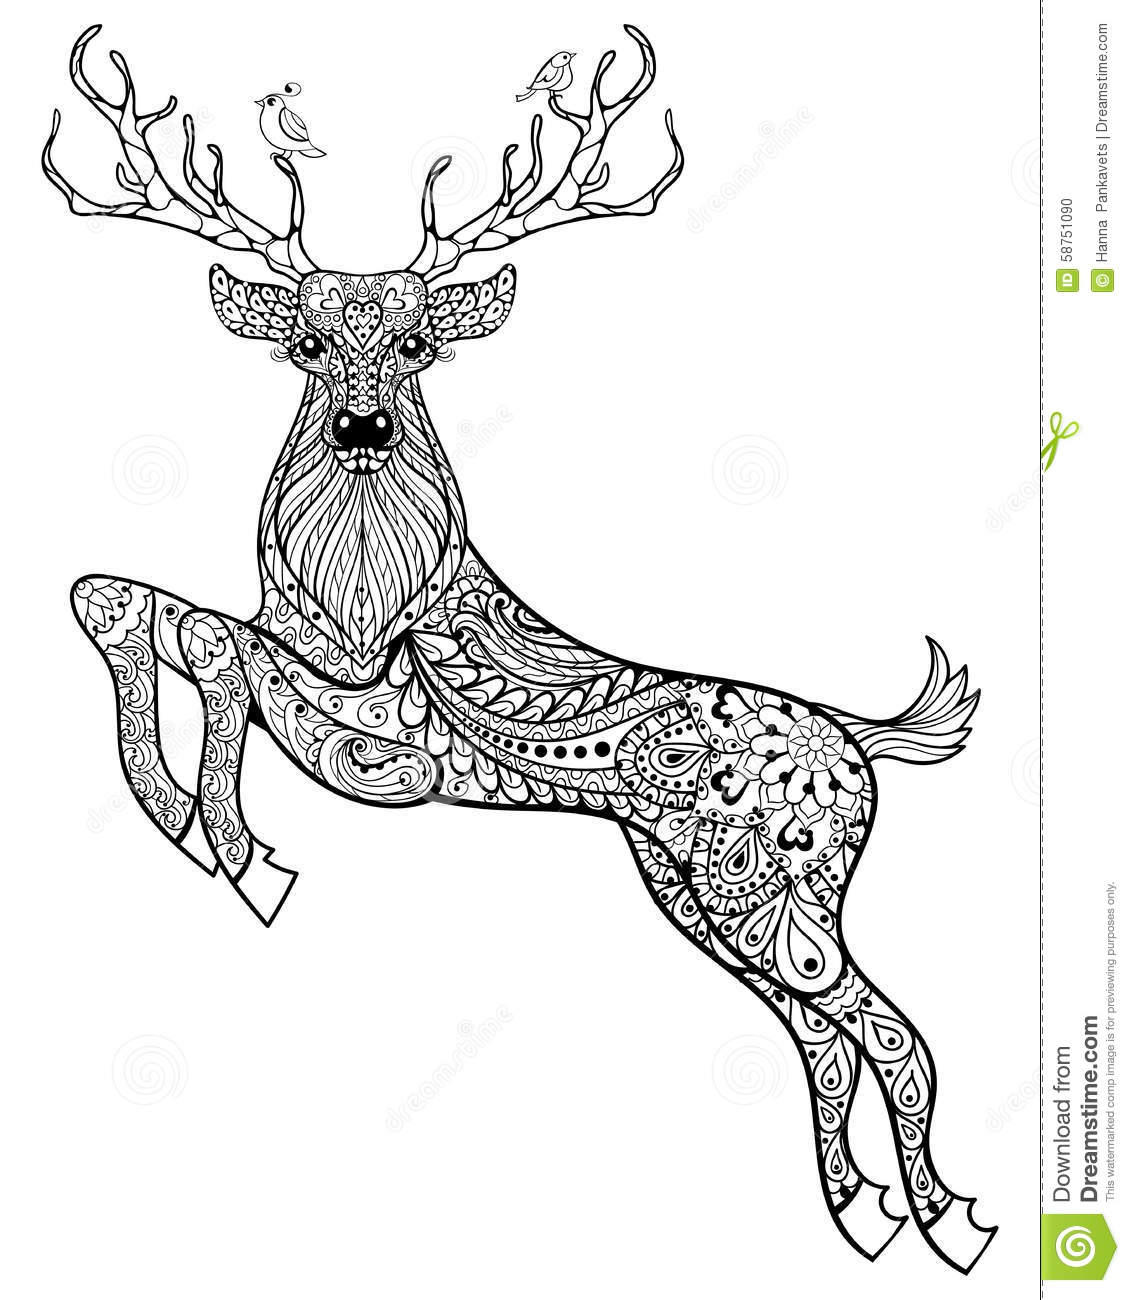 Hand Drawn Magic Horned Deer With Birds For Adult Anti